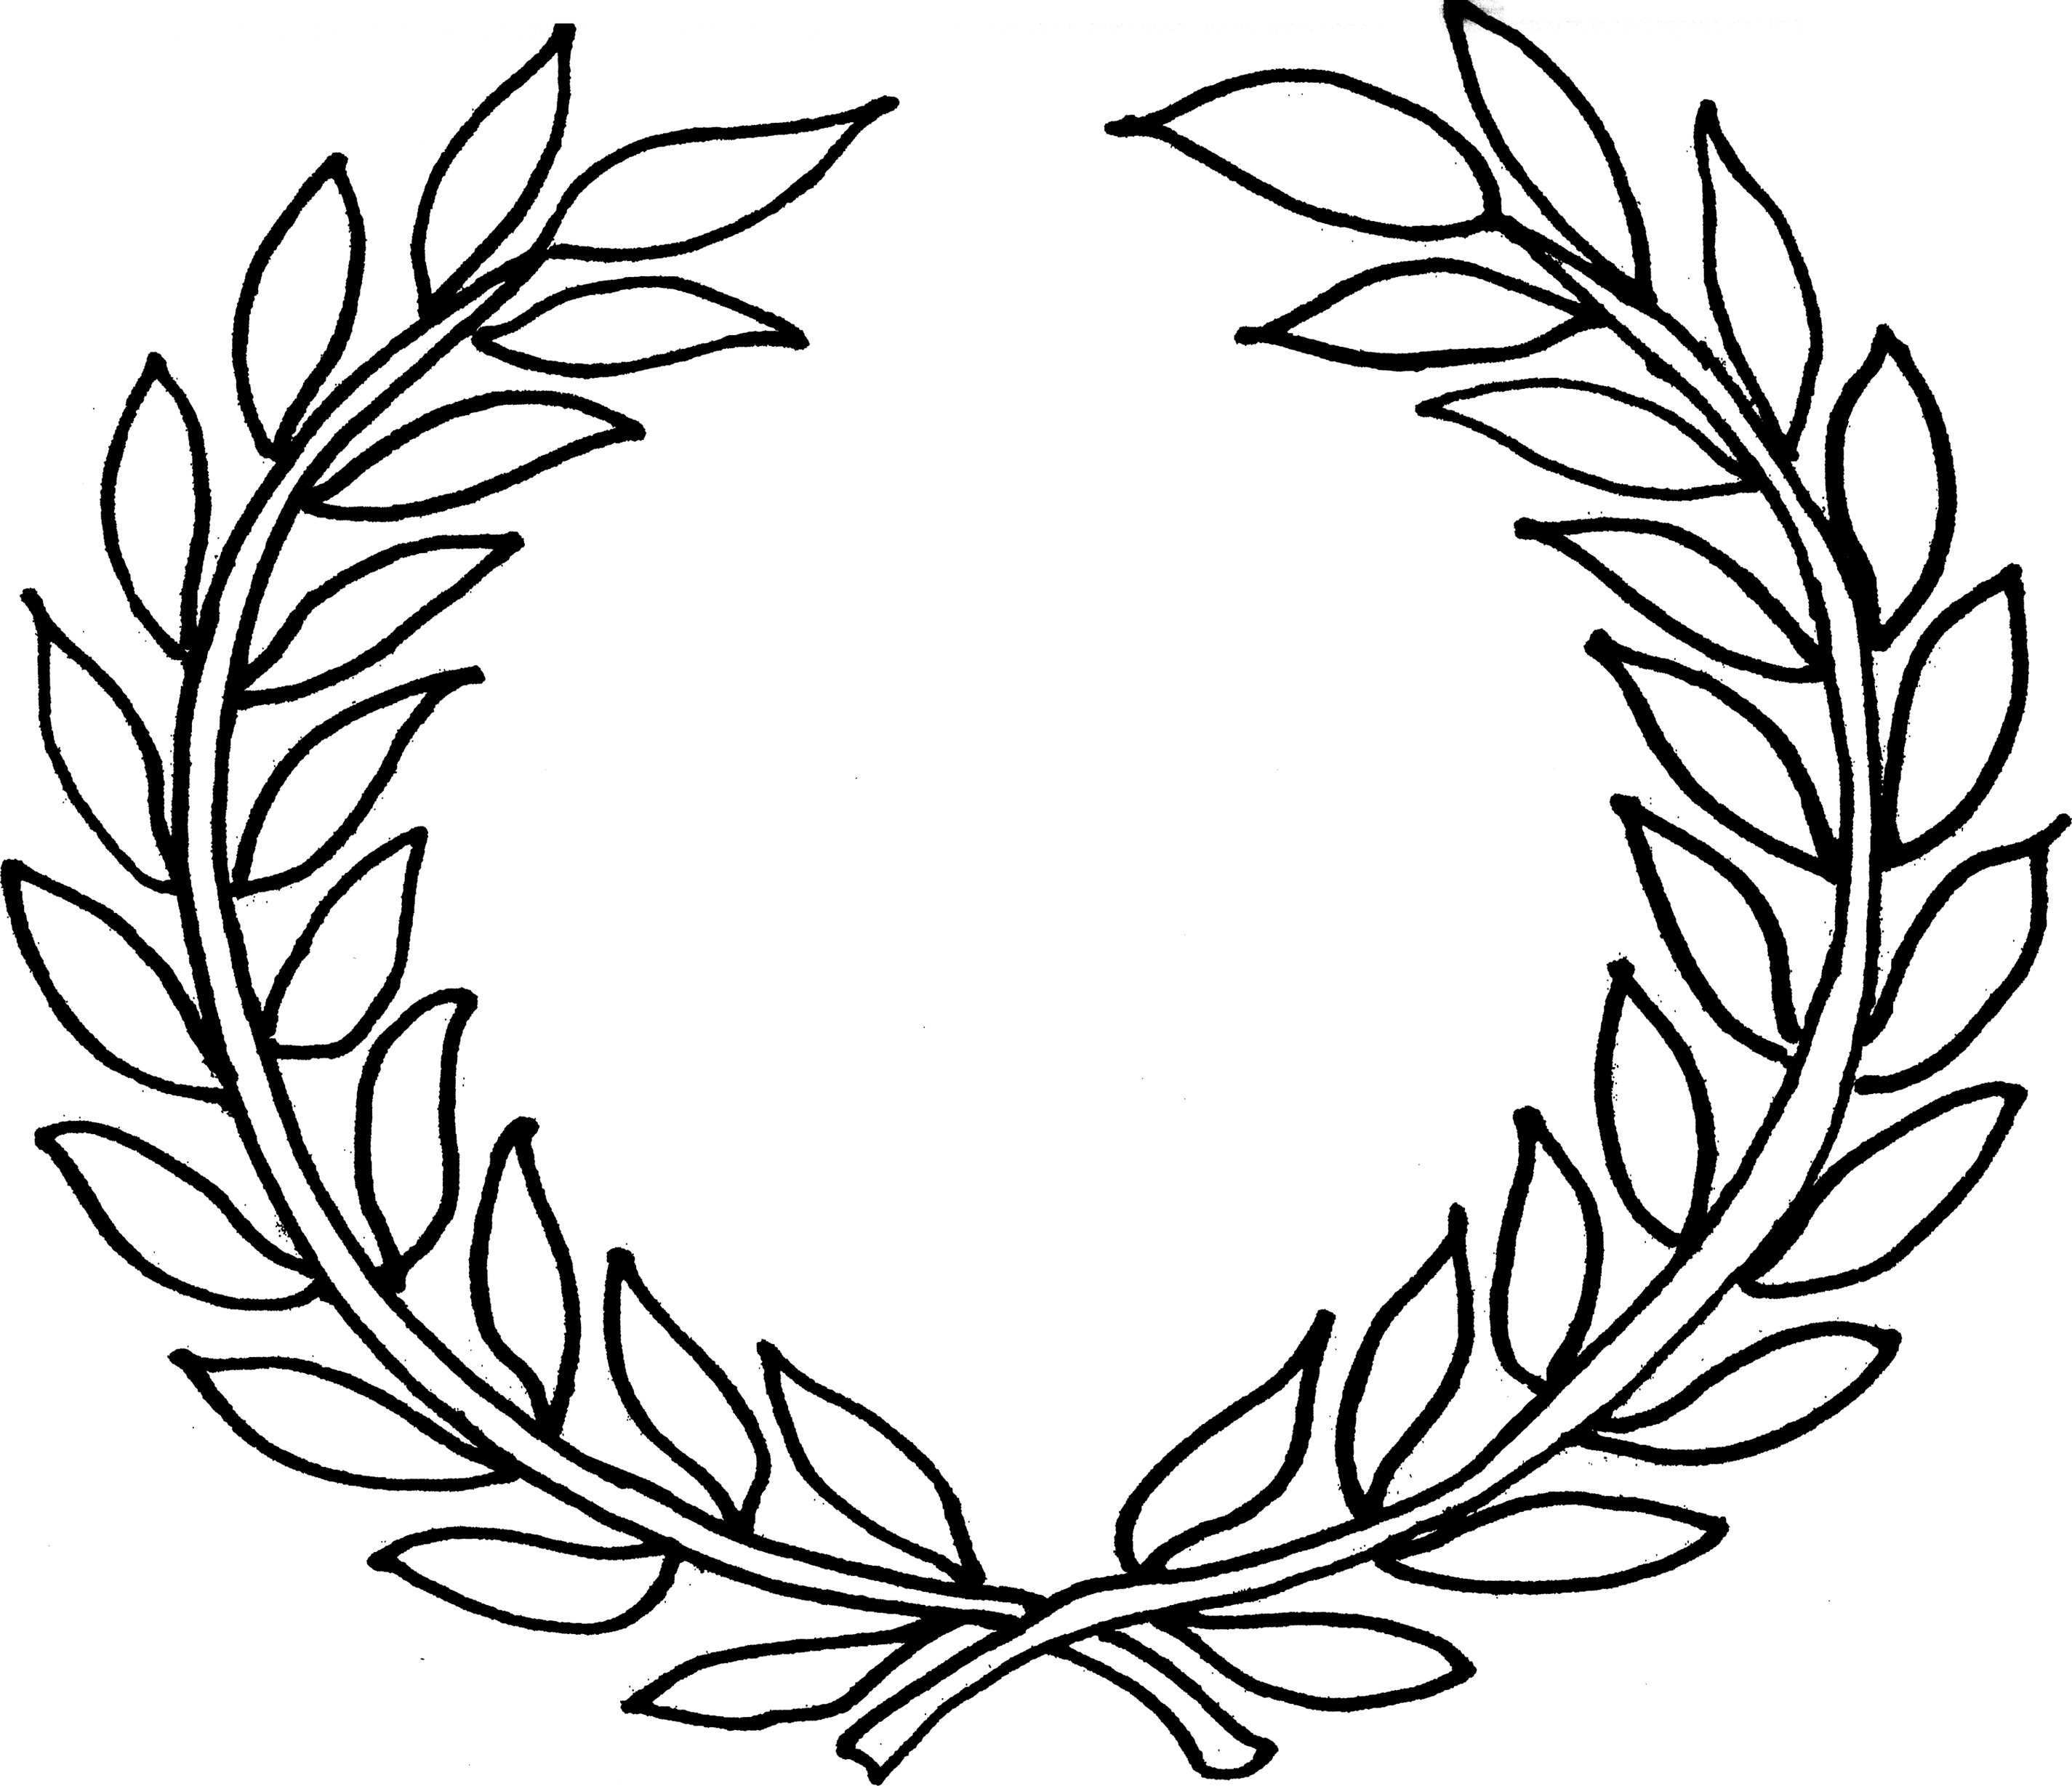 Top laurel wreath crown clipart 2850 2457 for Laurel leaf crown template